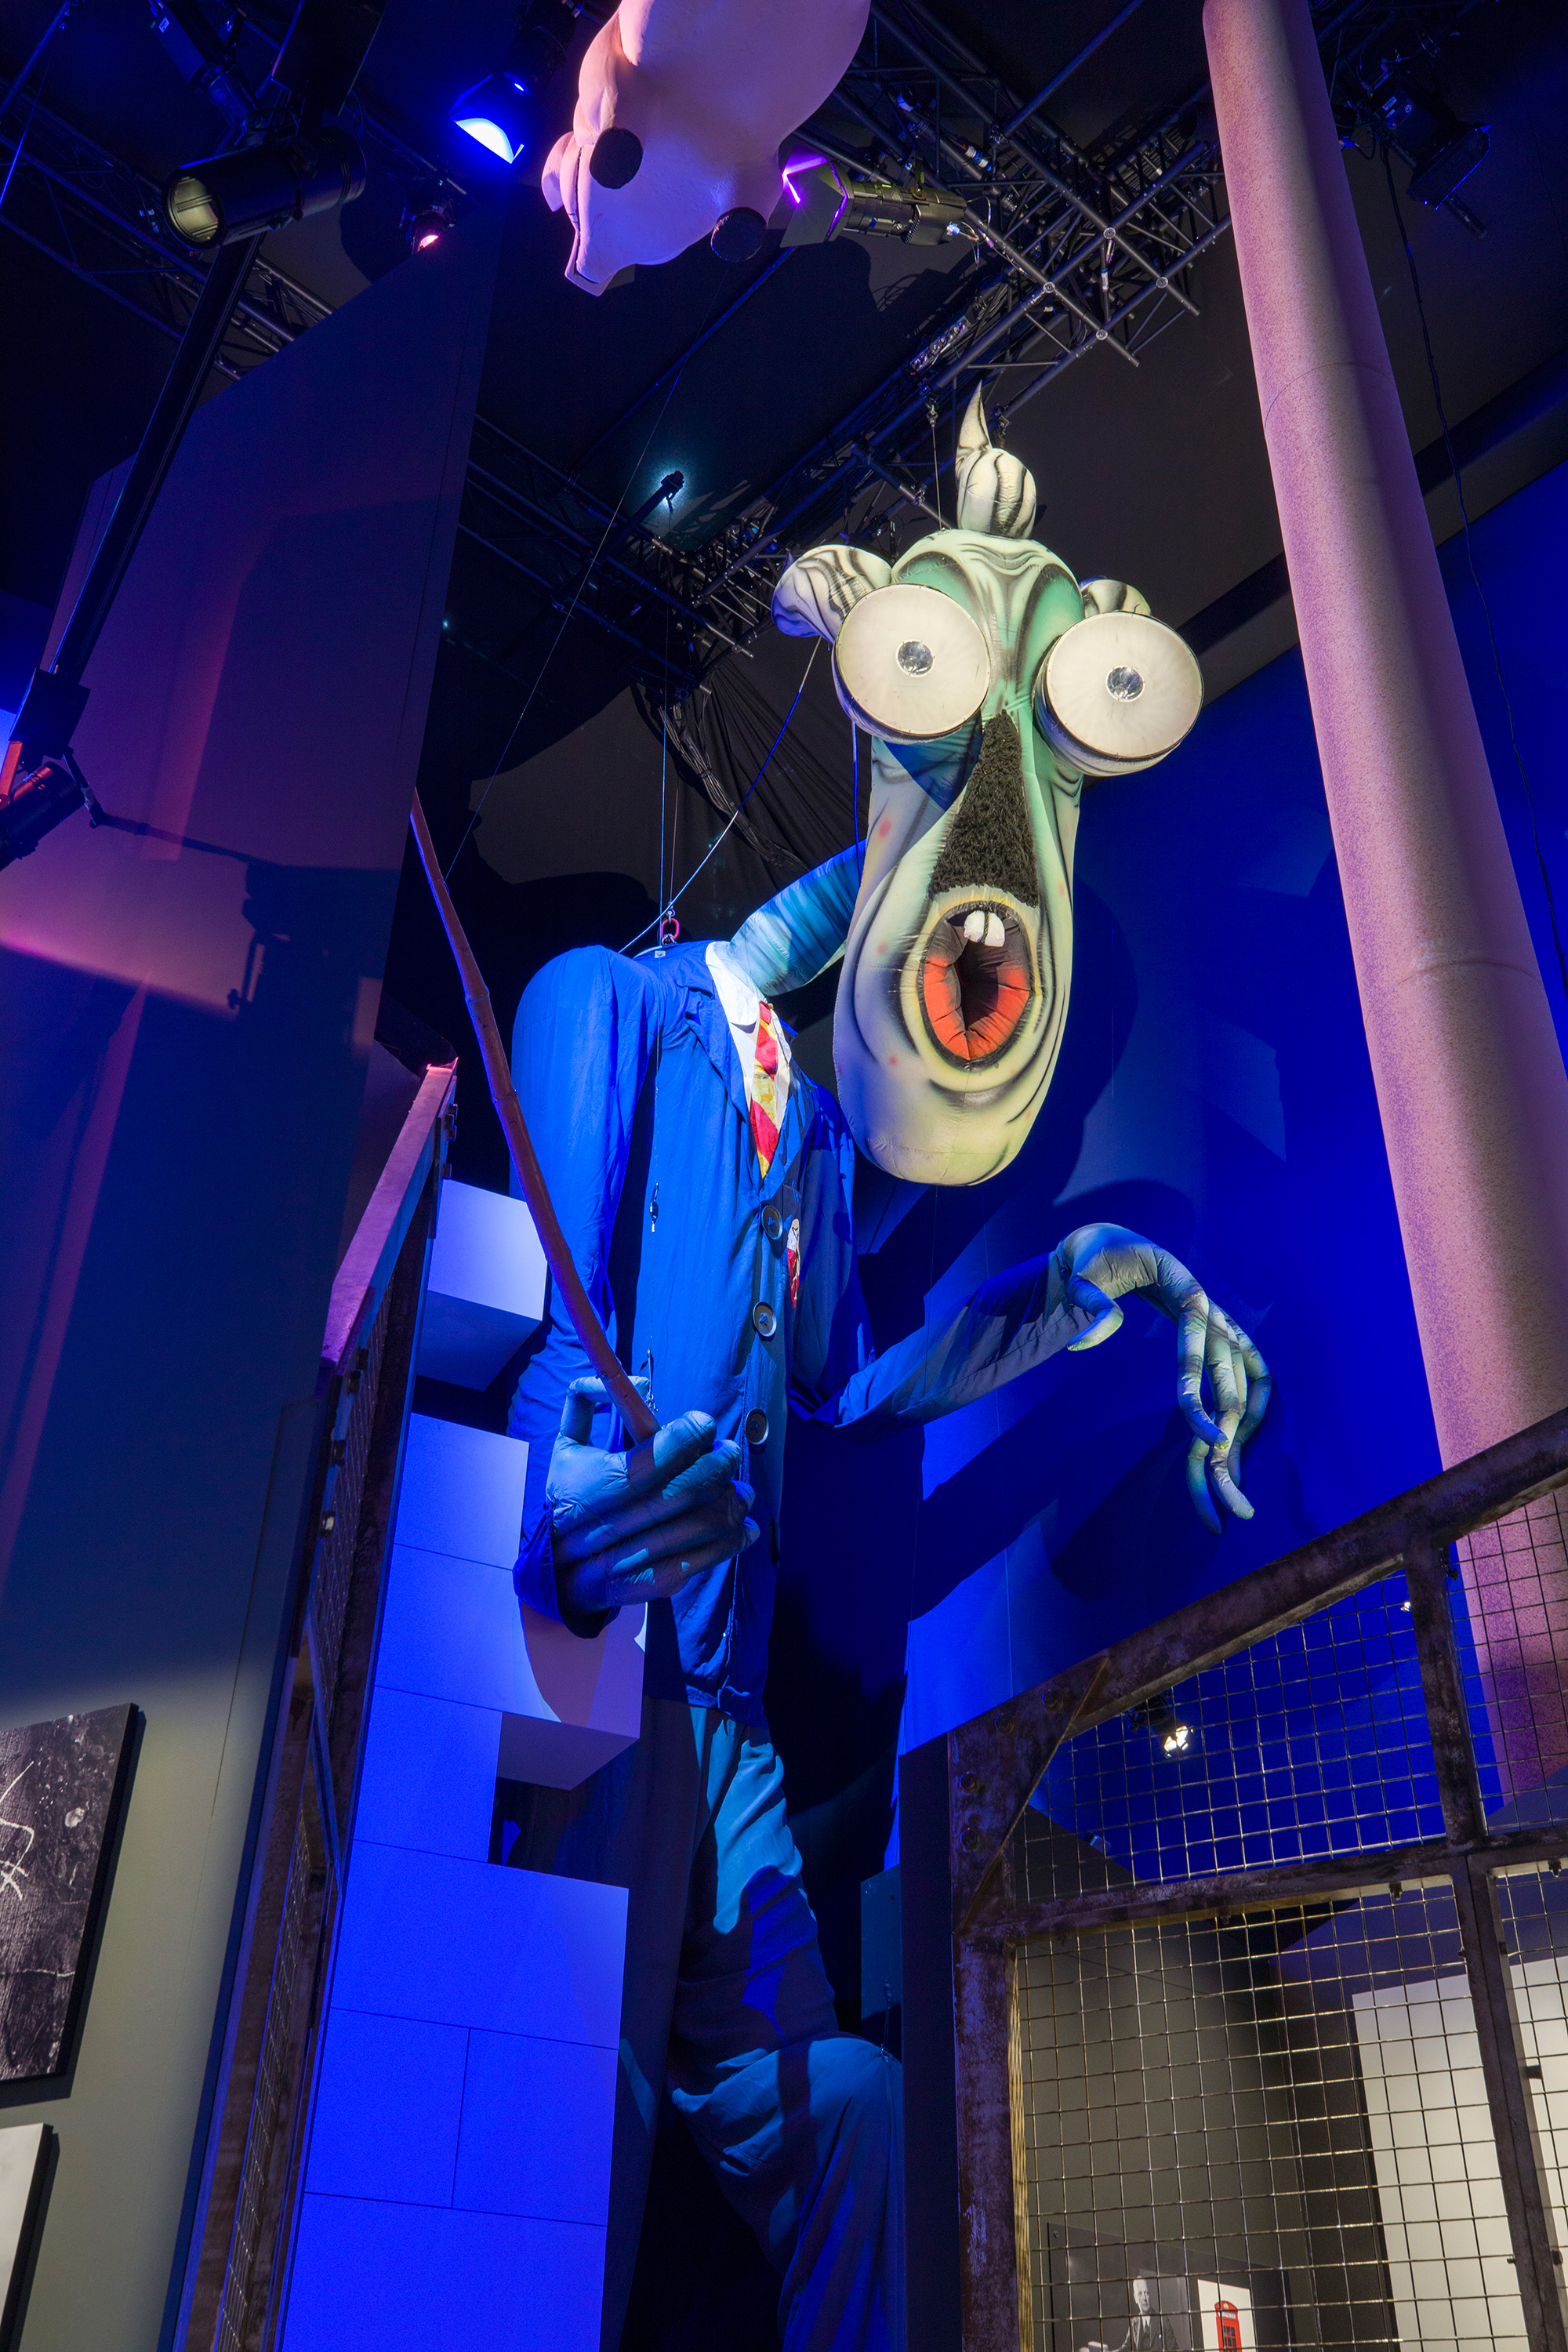 Inflatable 'Teacher' from Roger Waters' tour of The Wall, on show at The Pink Floyd Exhibition: Their Mortal Remains. The character was designed by Gerald Scarfe. Image courtesy of the V&A